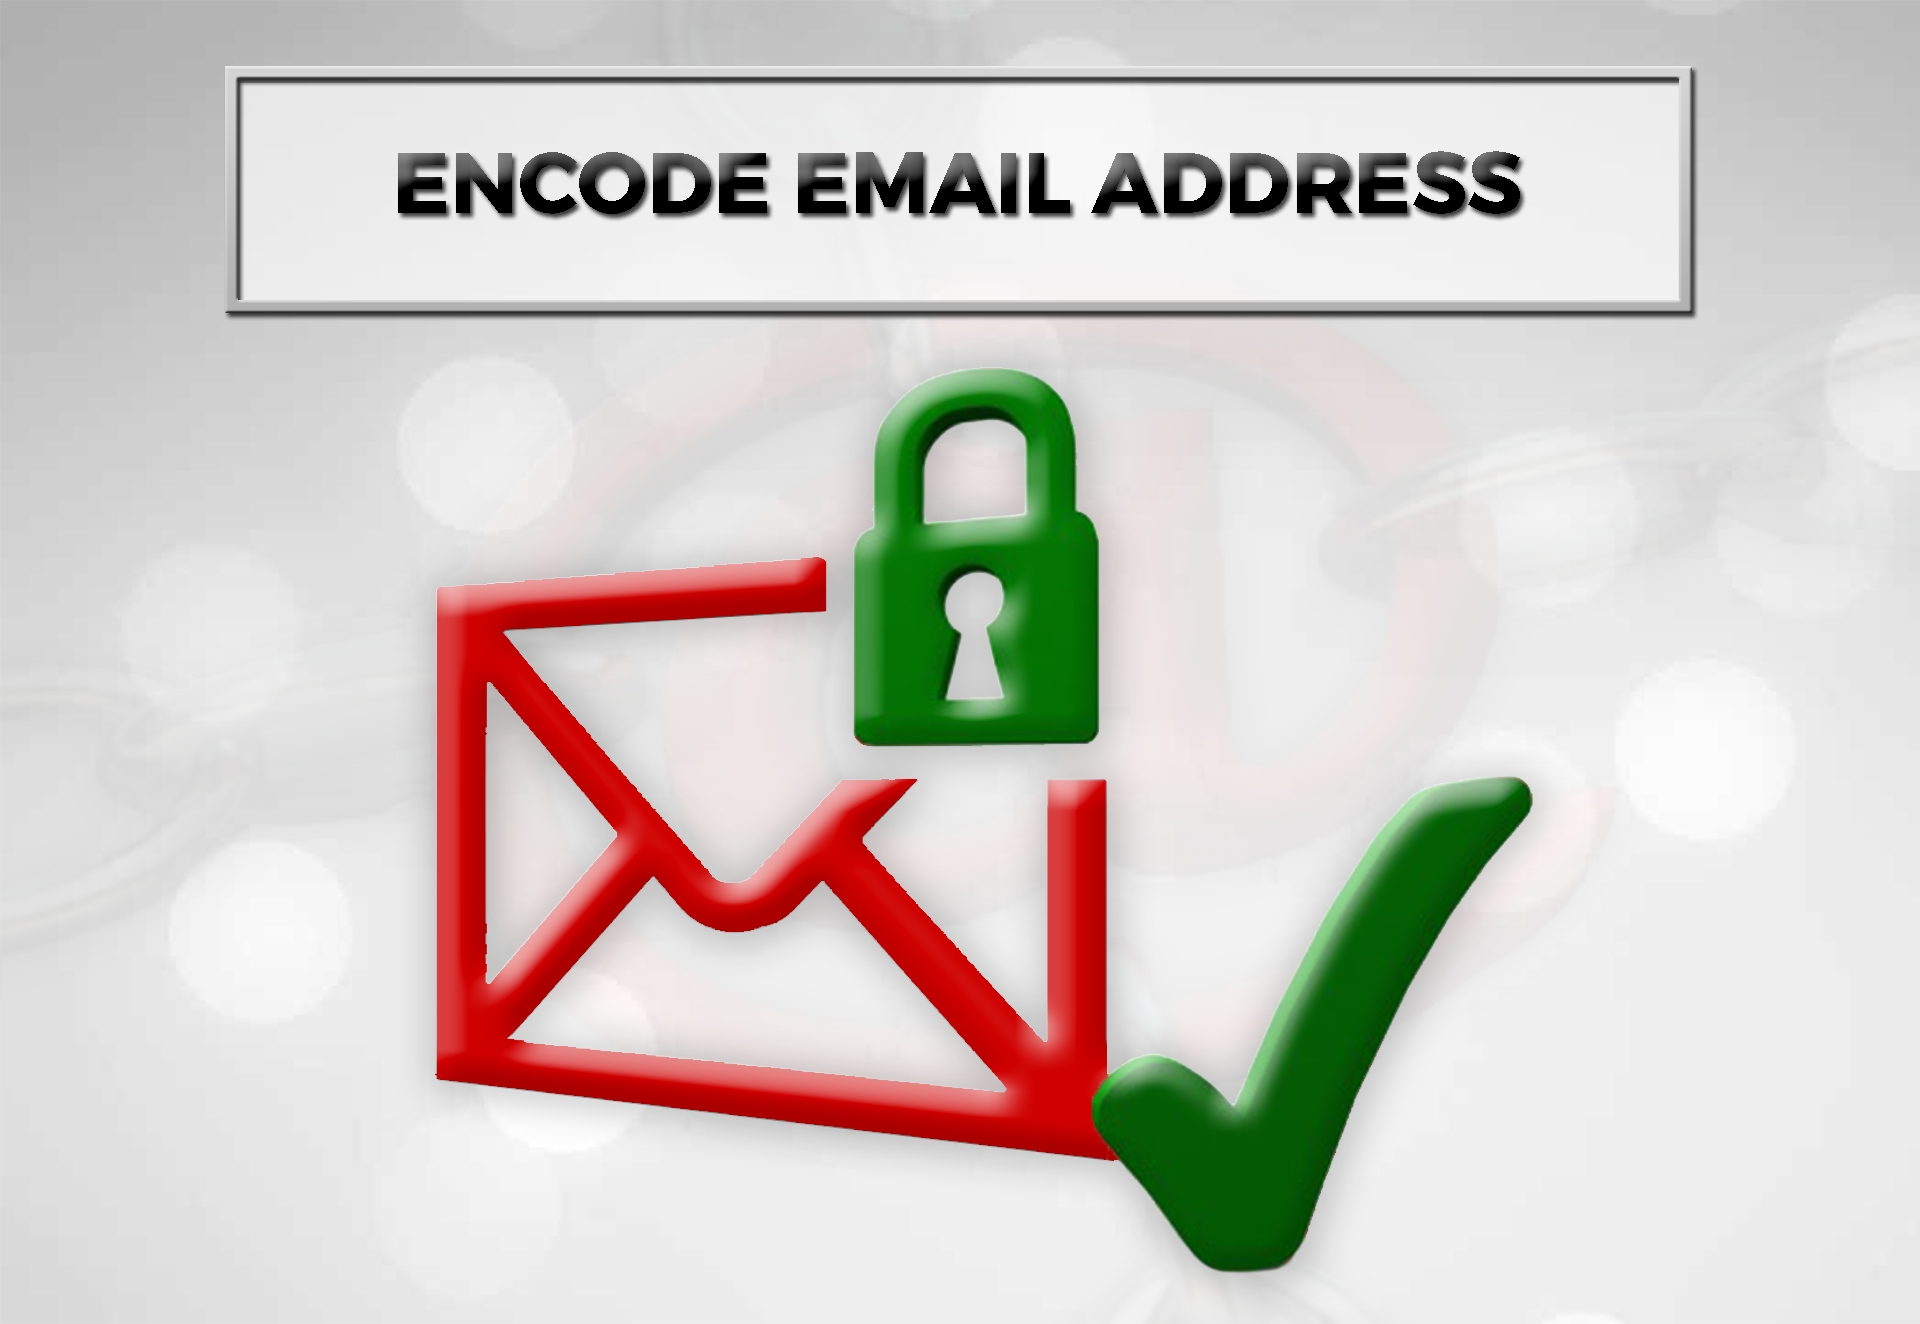 Encode Email Address Red